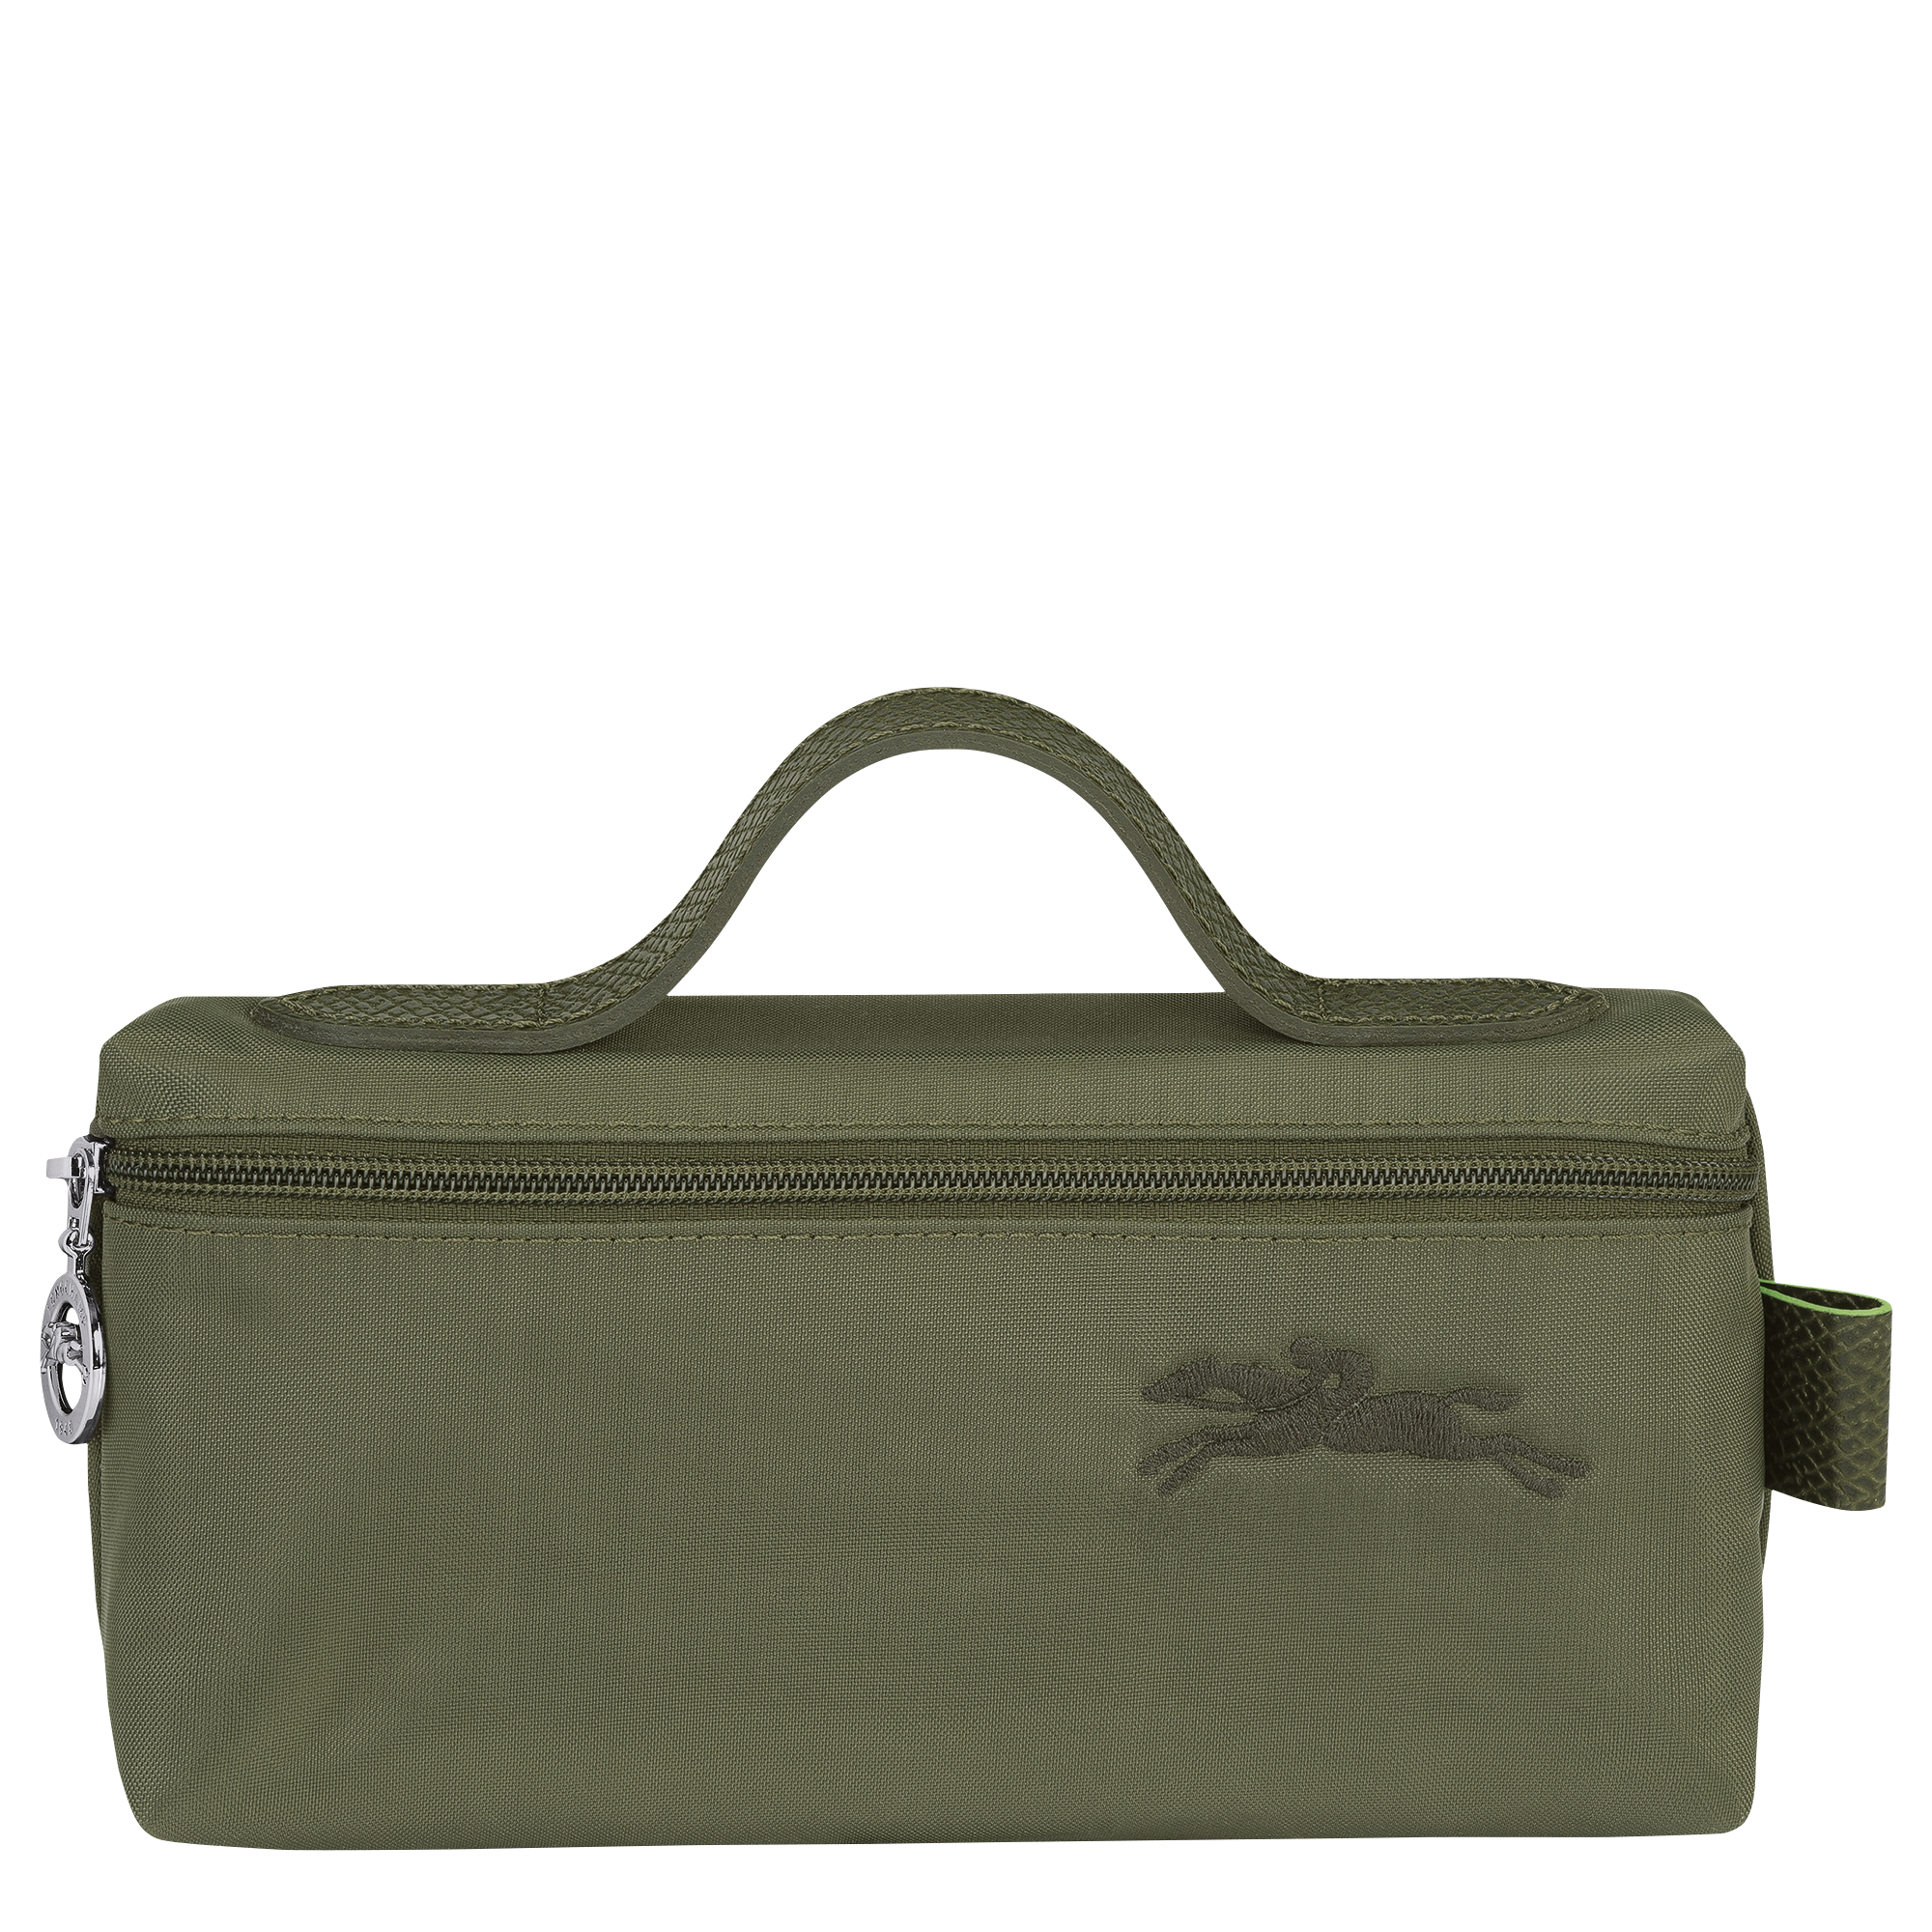 'LE PLIAGE®' GREEN POUCH IN FOREST, RM355